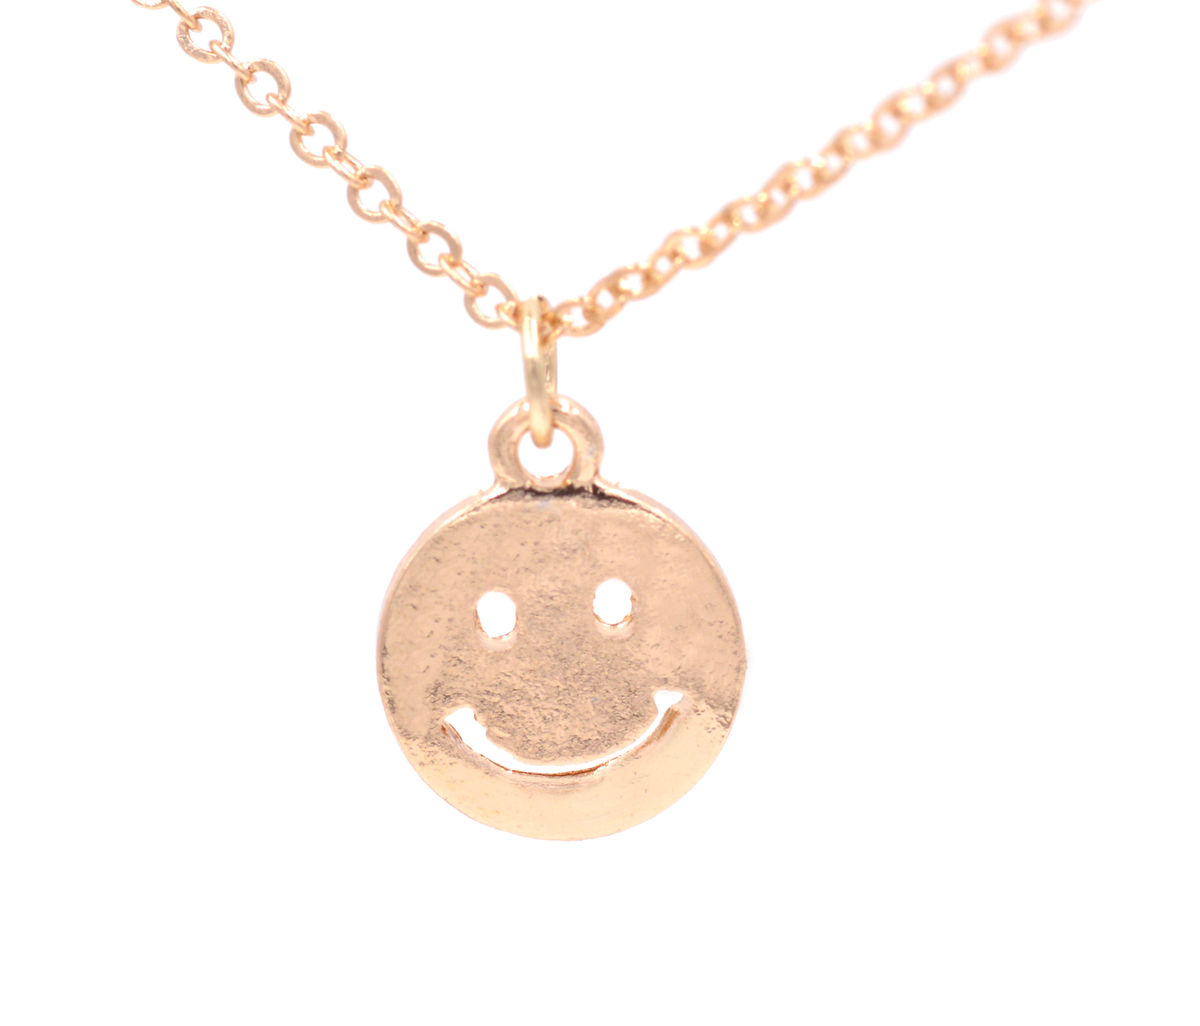 Gold tone little smiley face emoji pendant necklace 18in organza gold tone little smiley face emoji pendant necklace 18in organza bag aloadofball